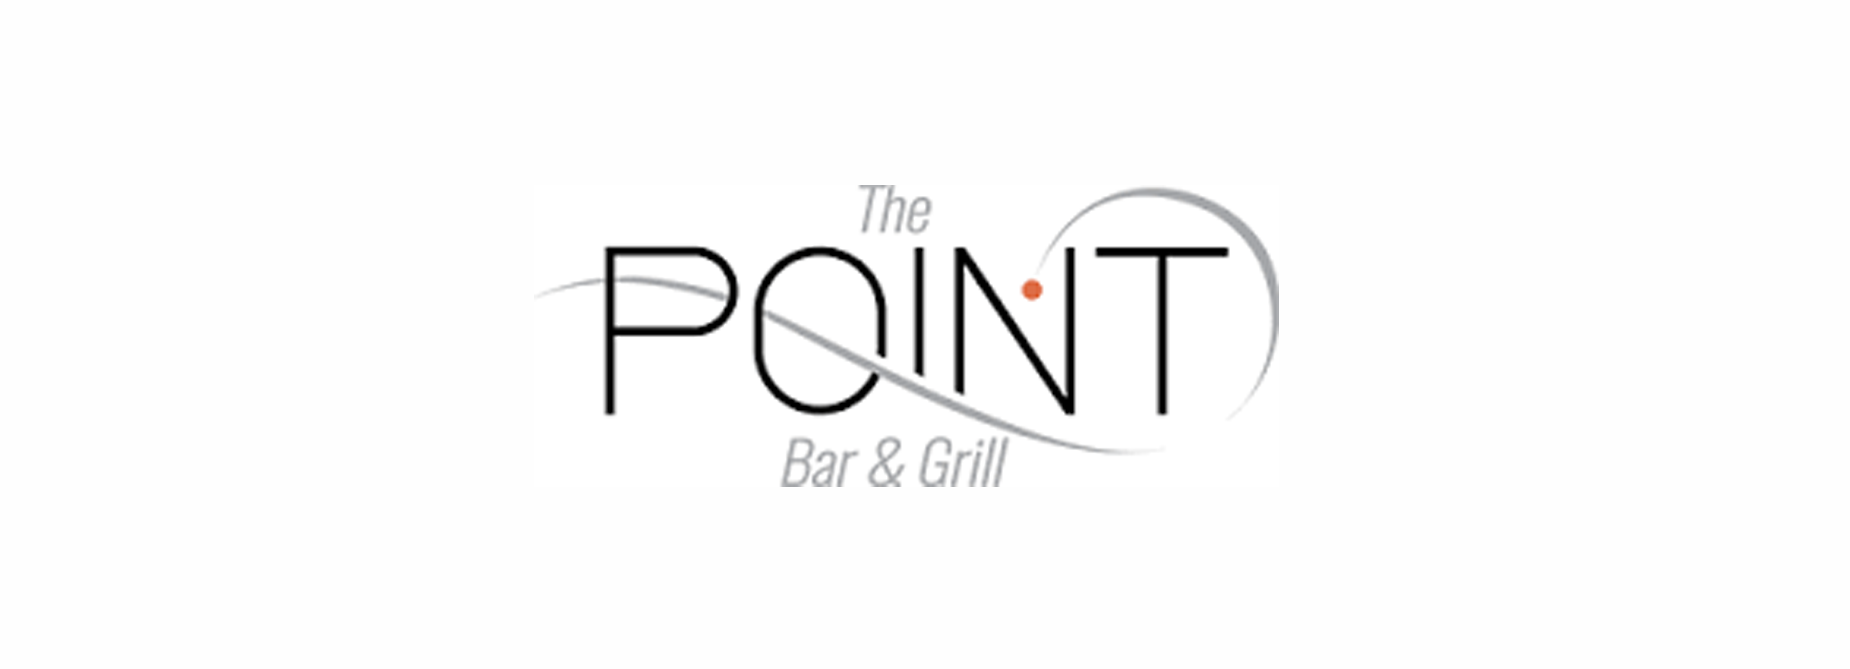 The Point Bar and Grill Logo